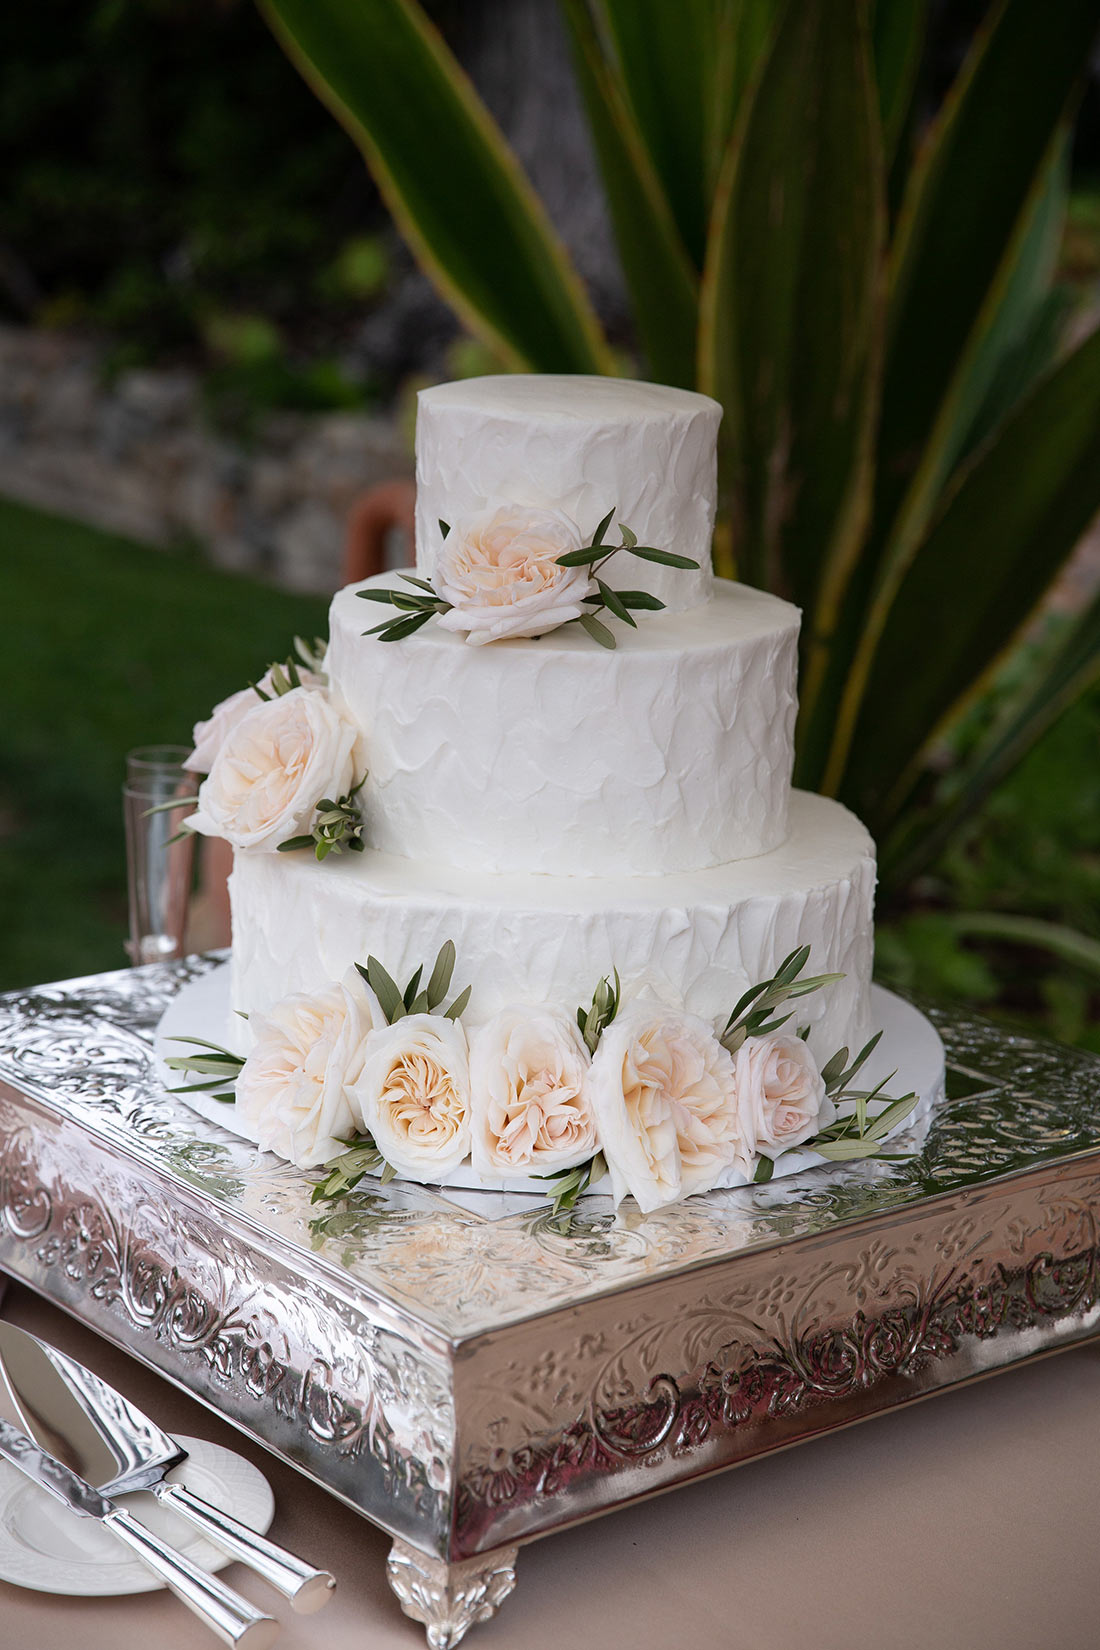 An image of a wedding cake decorated with white frosting and light orange roses